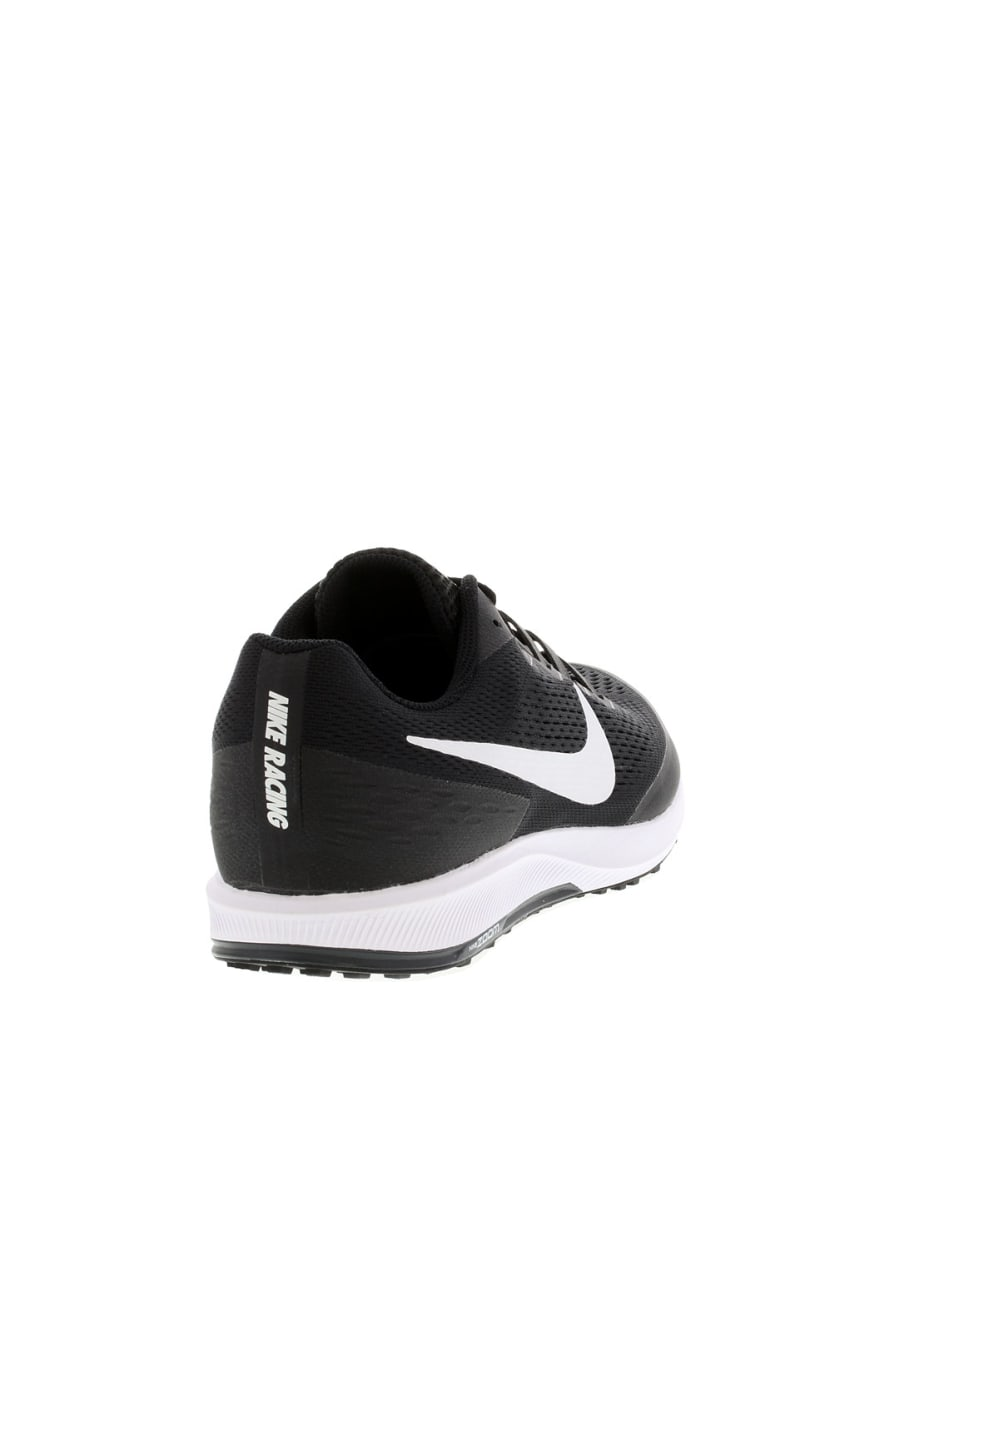 9ebb1d8c01 Next. Nike. Air Zoom Speed Rival 6 Wide - Running shoes. €79.95. incl. VAT  ...